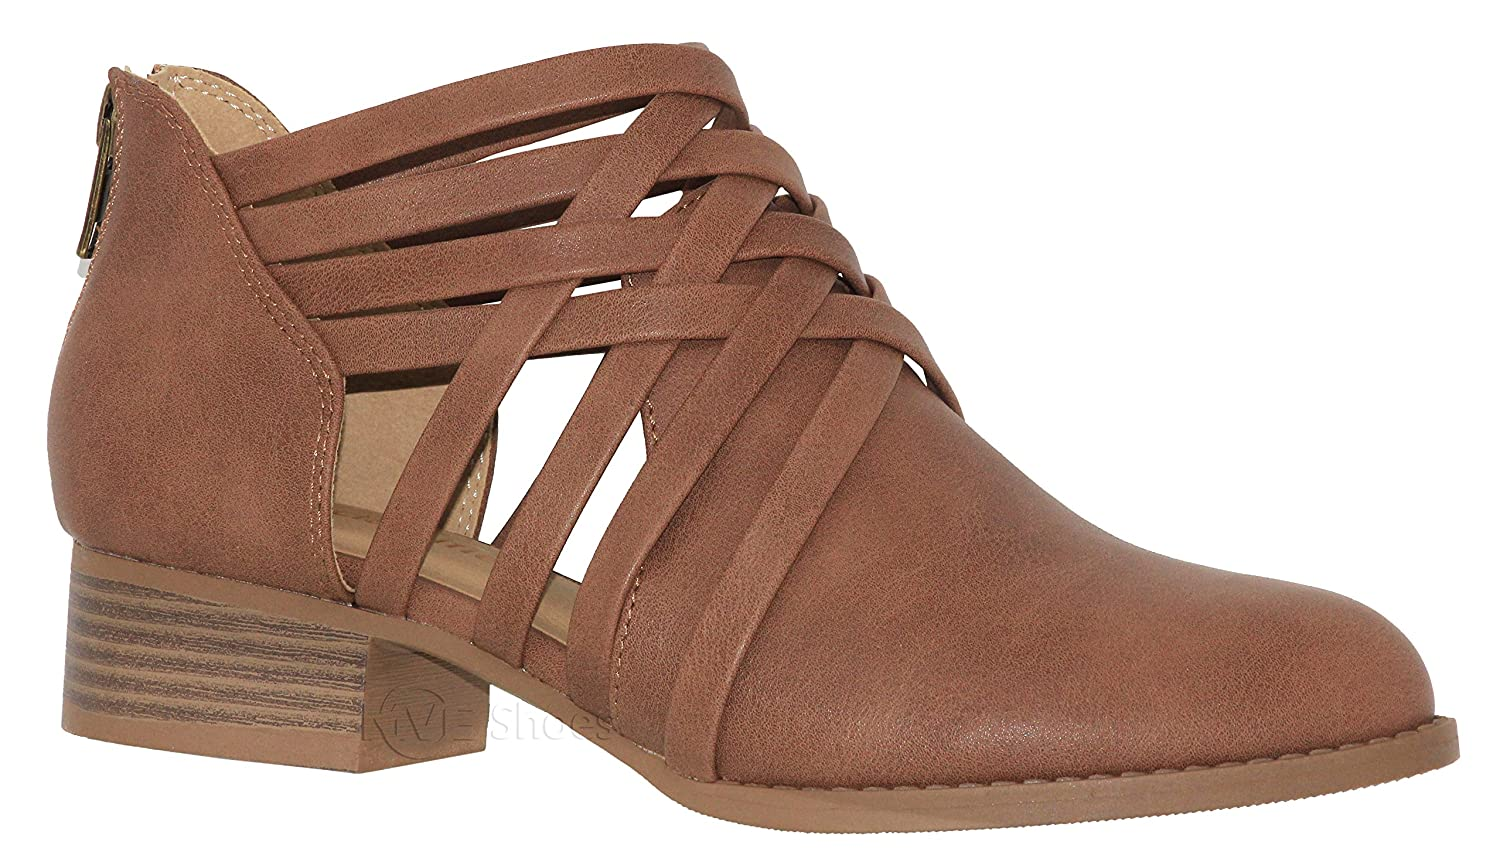 City Classified Women's Ankle Bootie Woven Strappy Weeve Criss Cross Low Chunky Heel